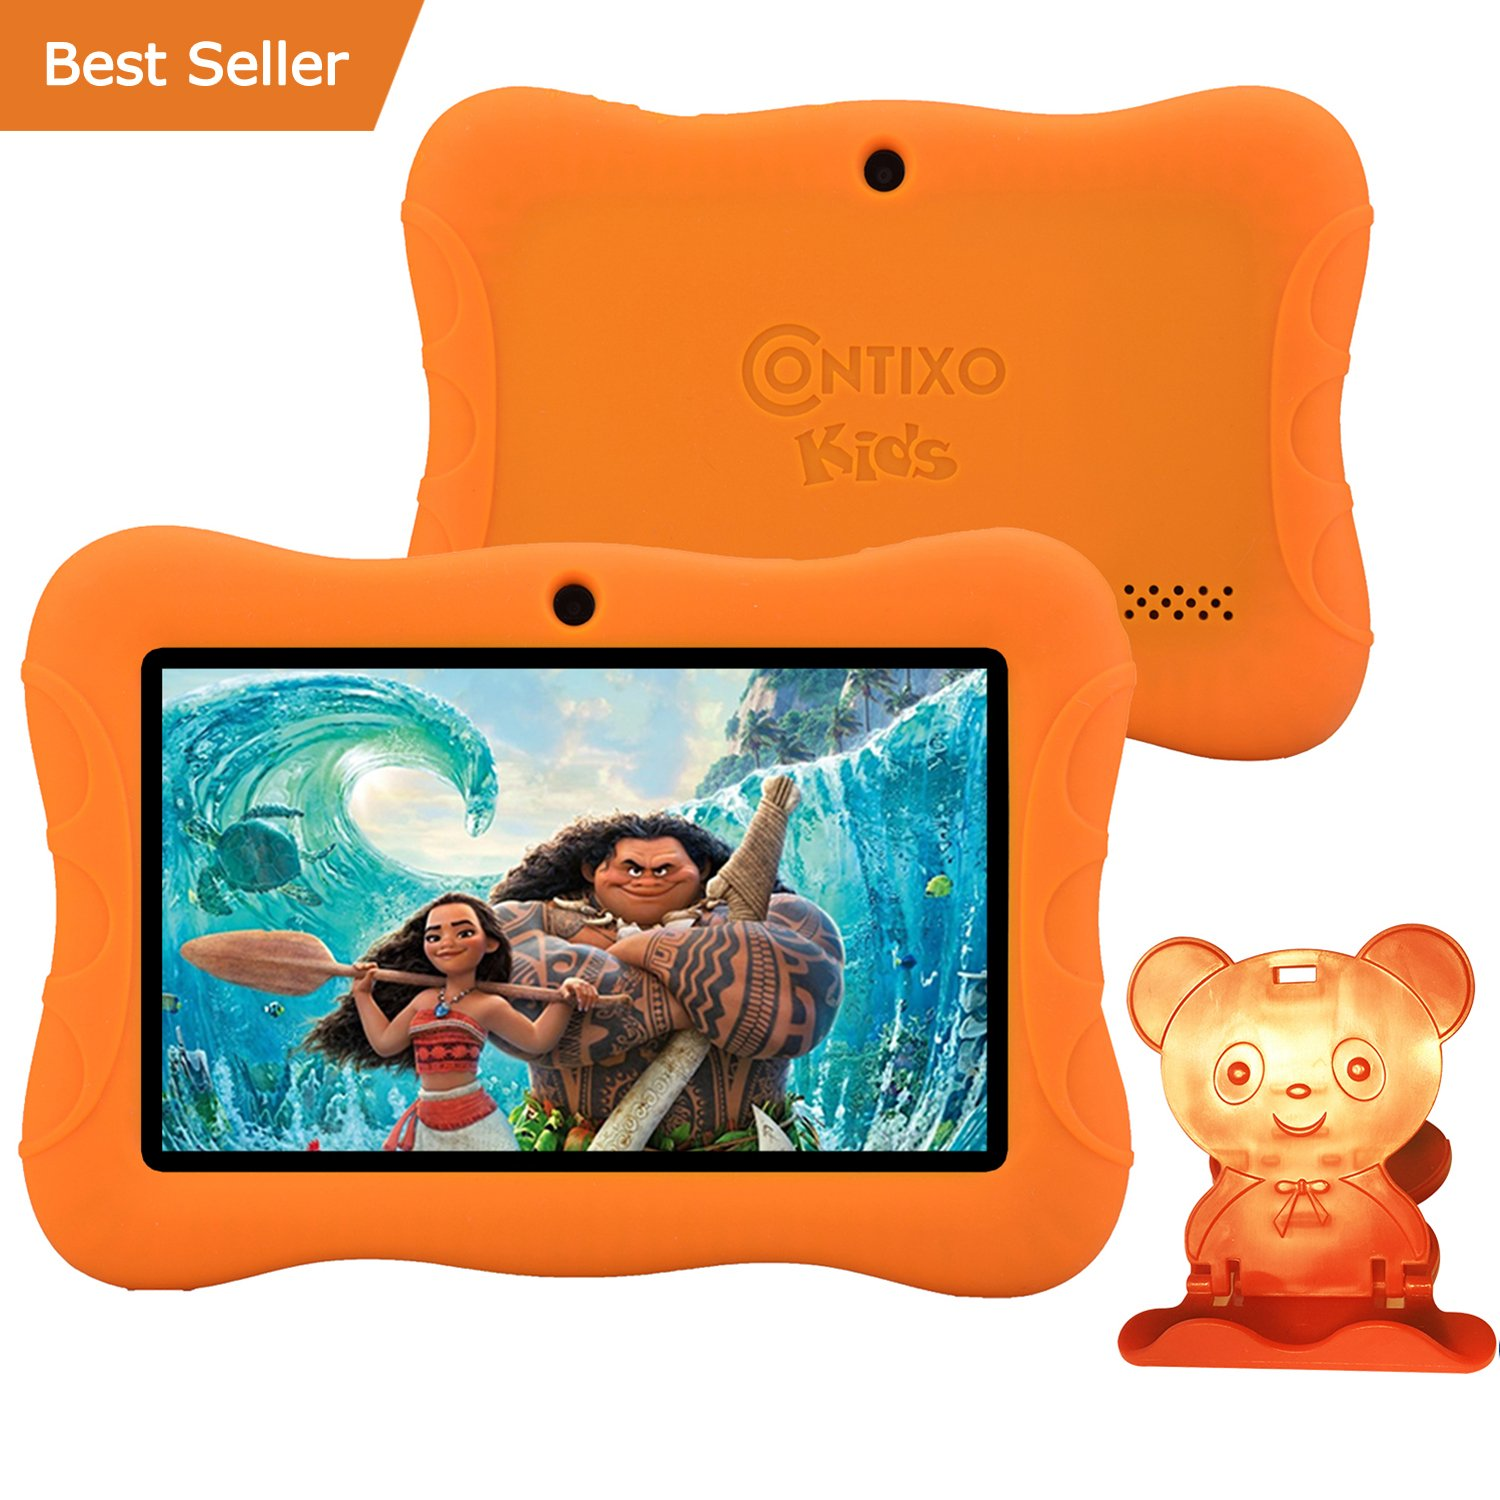 HOLIDAY SPECIAL! Contixo Kid Safe 7'' HD Tablet WiFi 8GB Bluetooth, Free Games, Kids-Place Parental Control W/ Kid-Proof Case (Orange) - Best Gift For Christmas